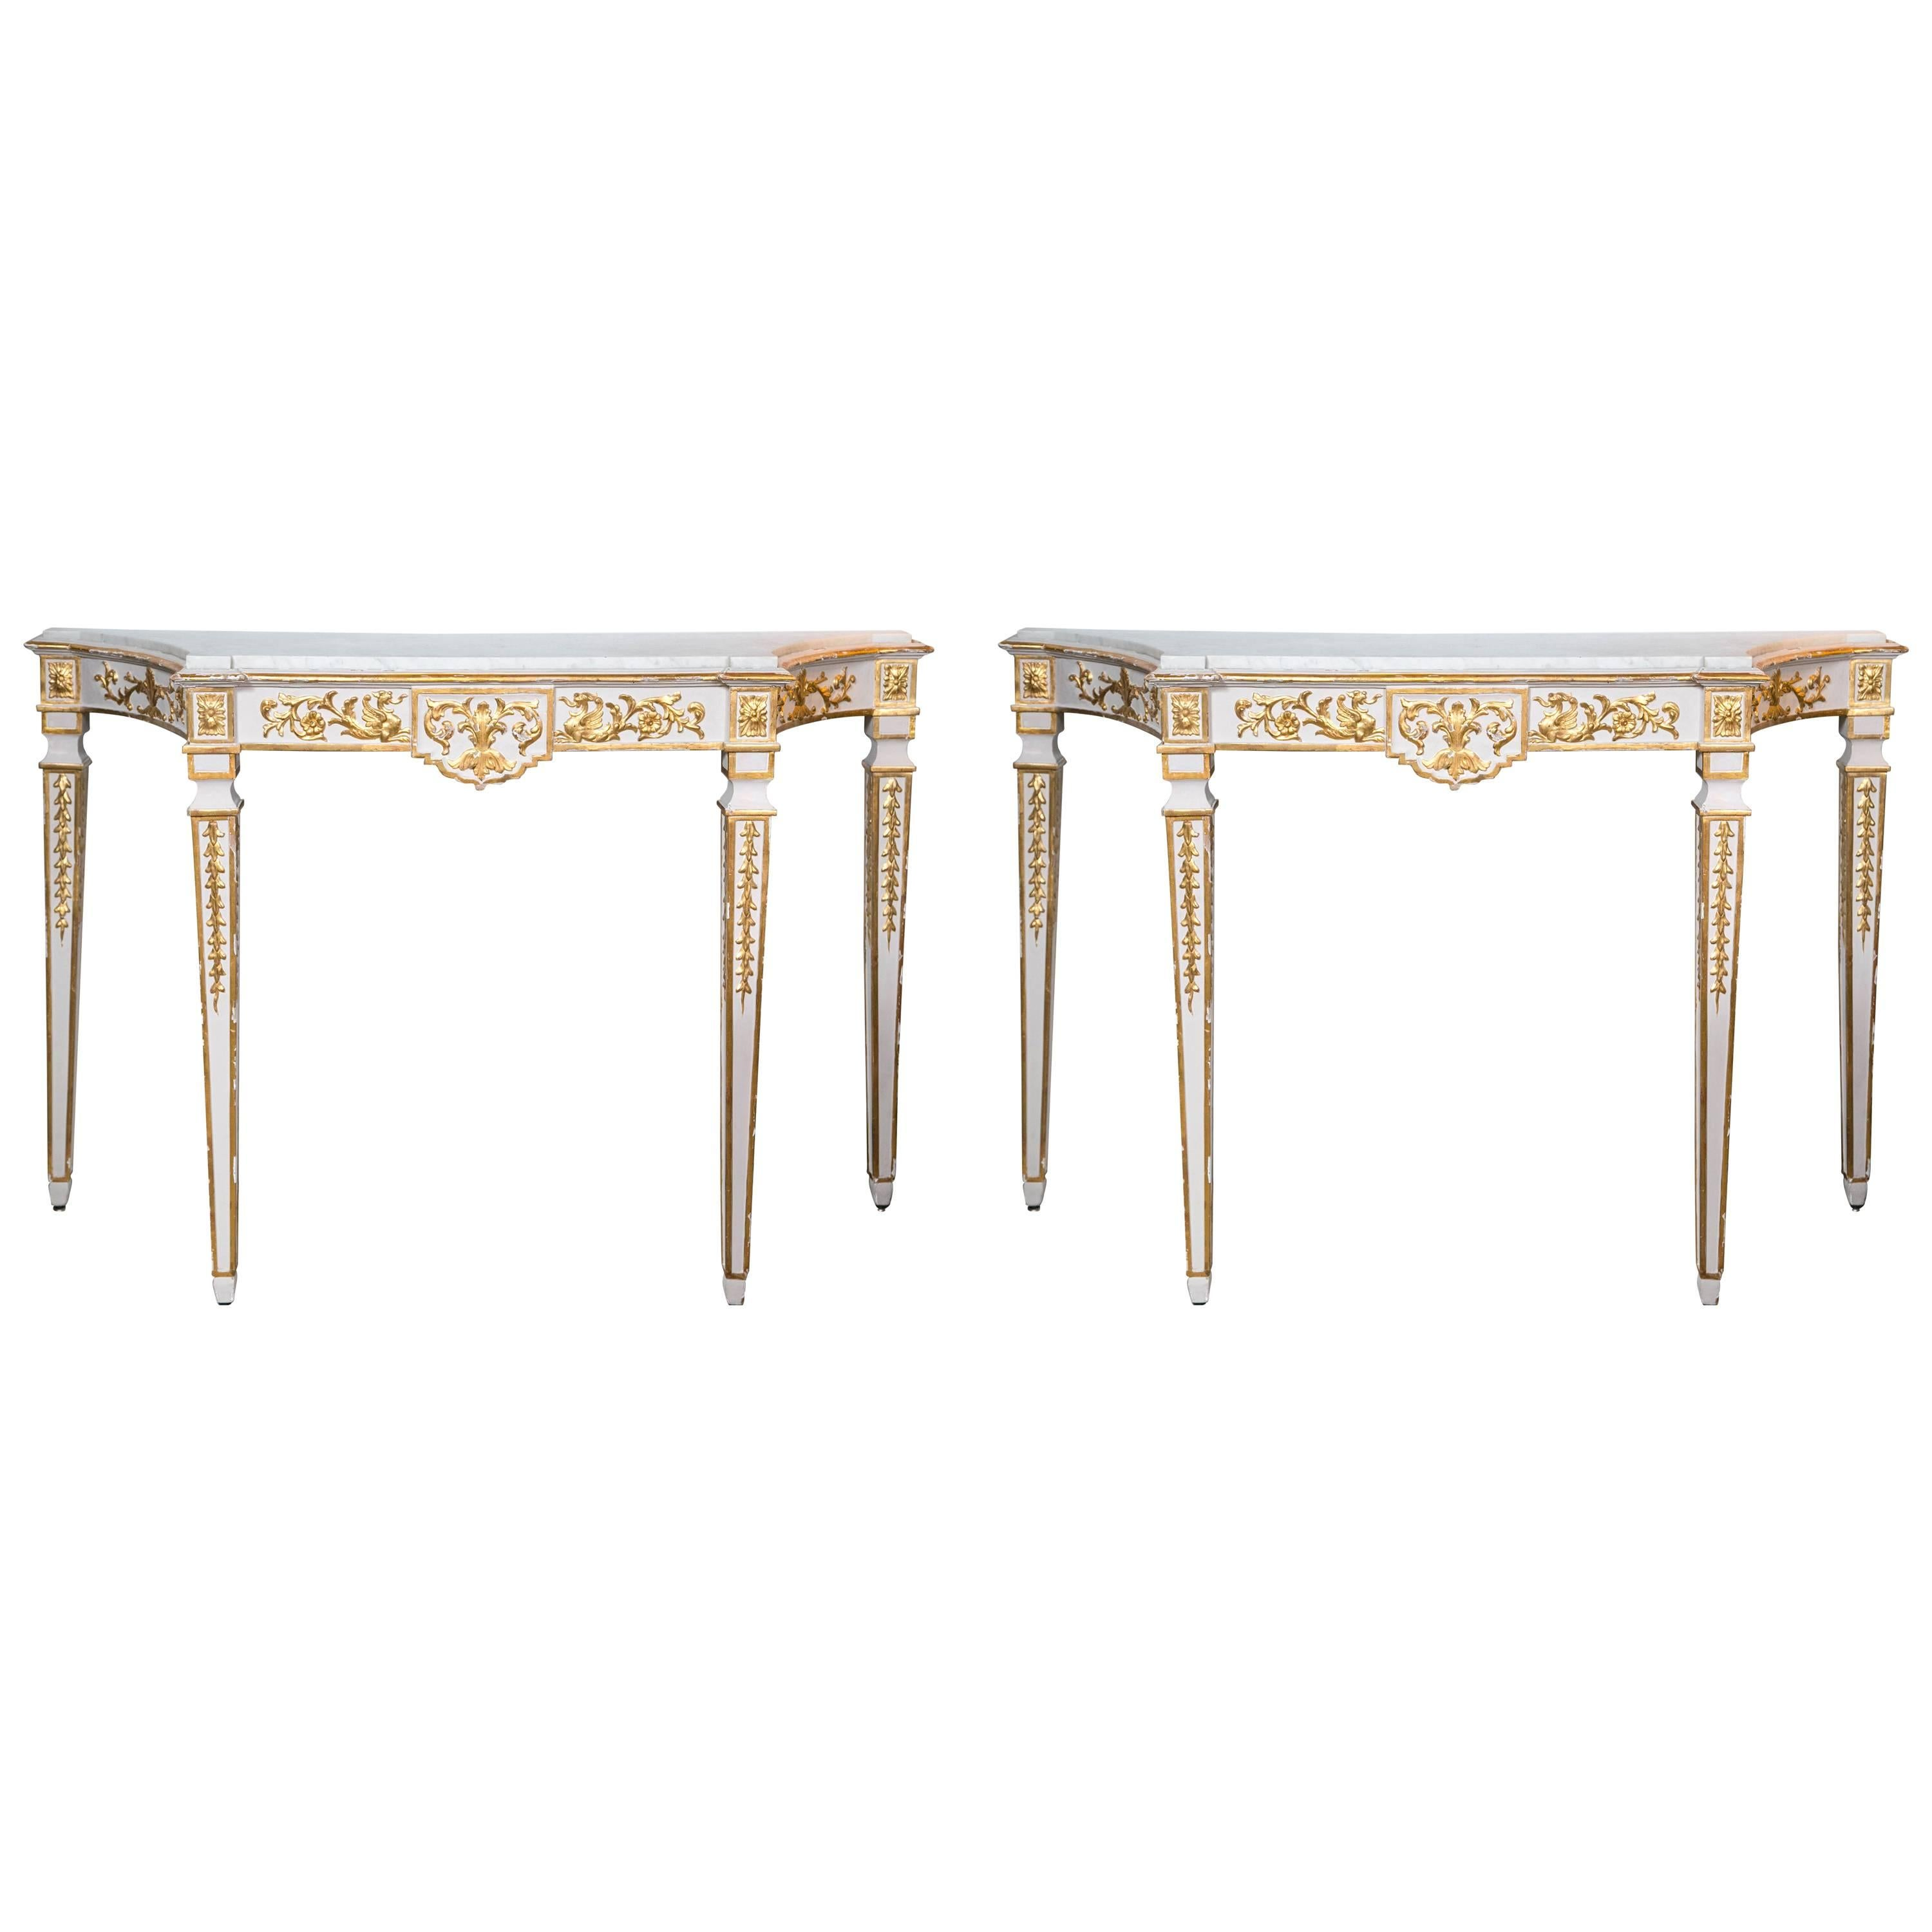 Console Tables Pair Parcel-Gilt and White Painted Italian Neoclassical Style